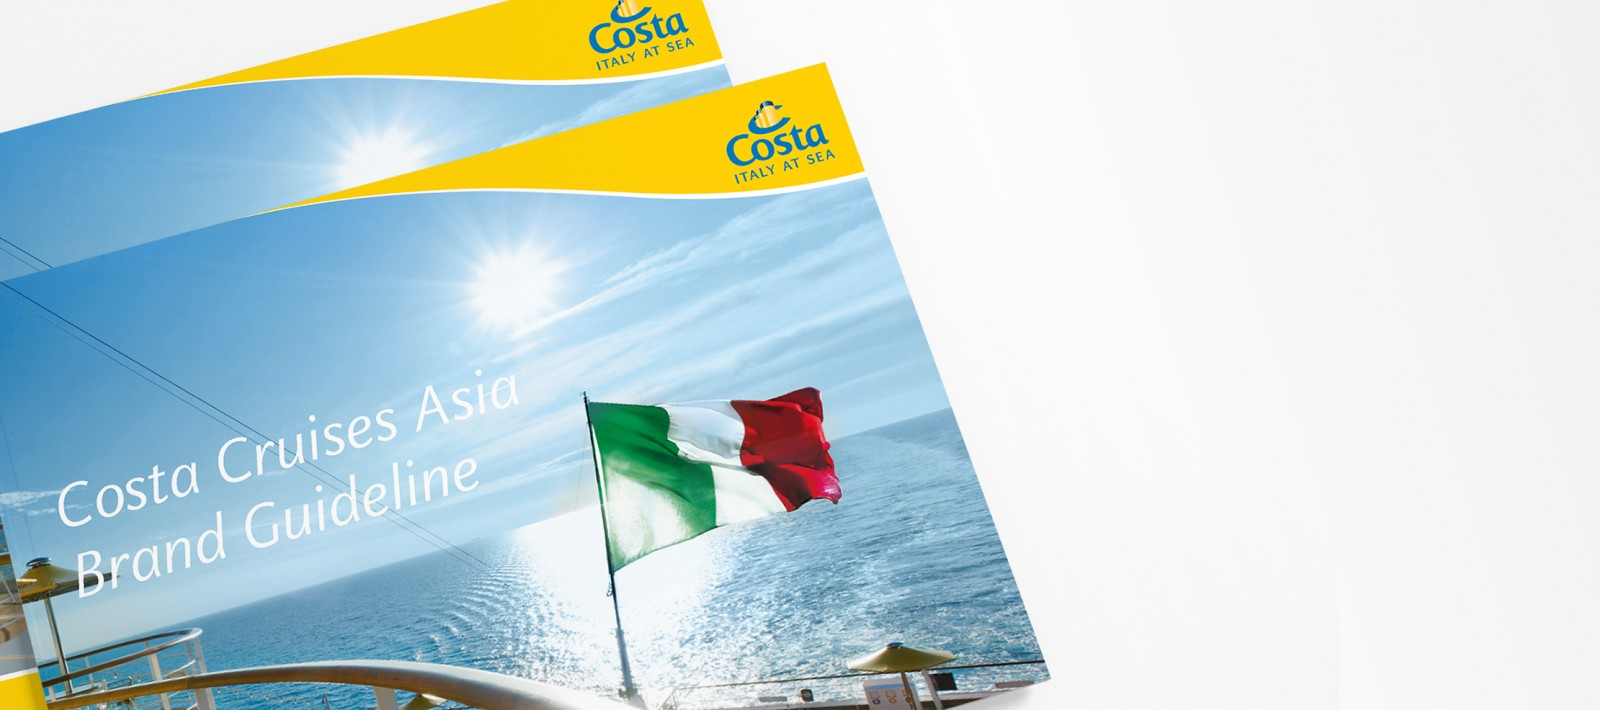 Brand book design for Costa cruises